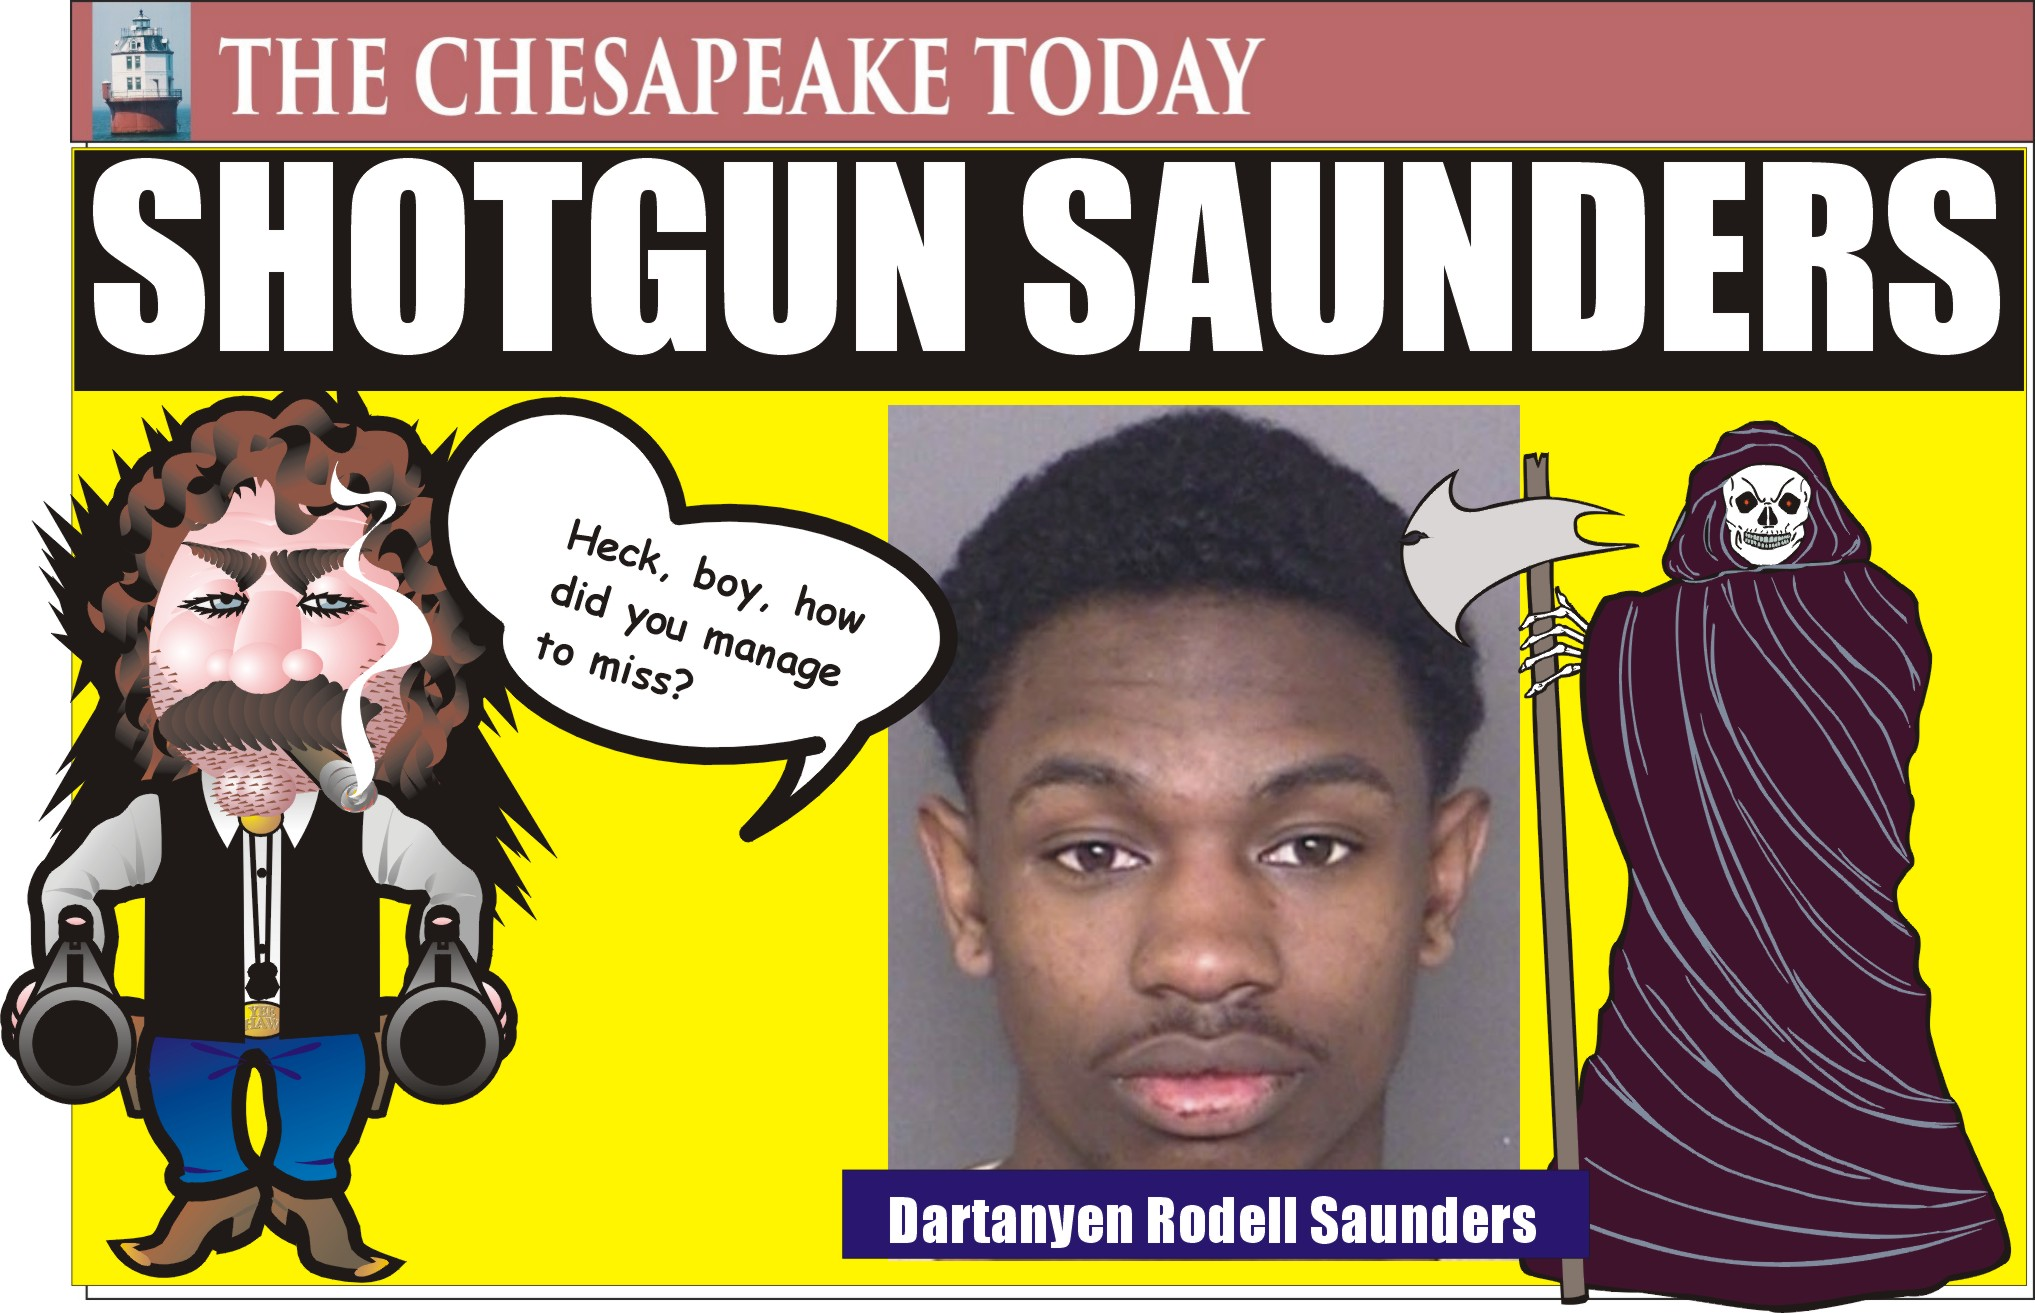 CRIME TOWN L P CITY: Mayhem again as gunman fires shotgun into window of home; Dartanyen Saunders now in slammer